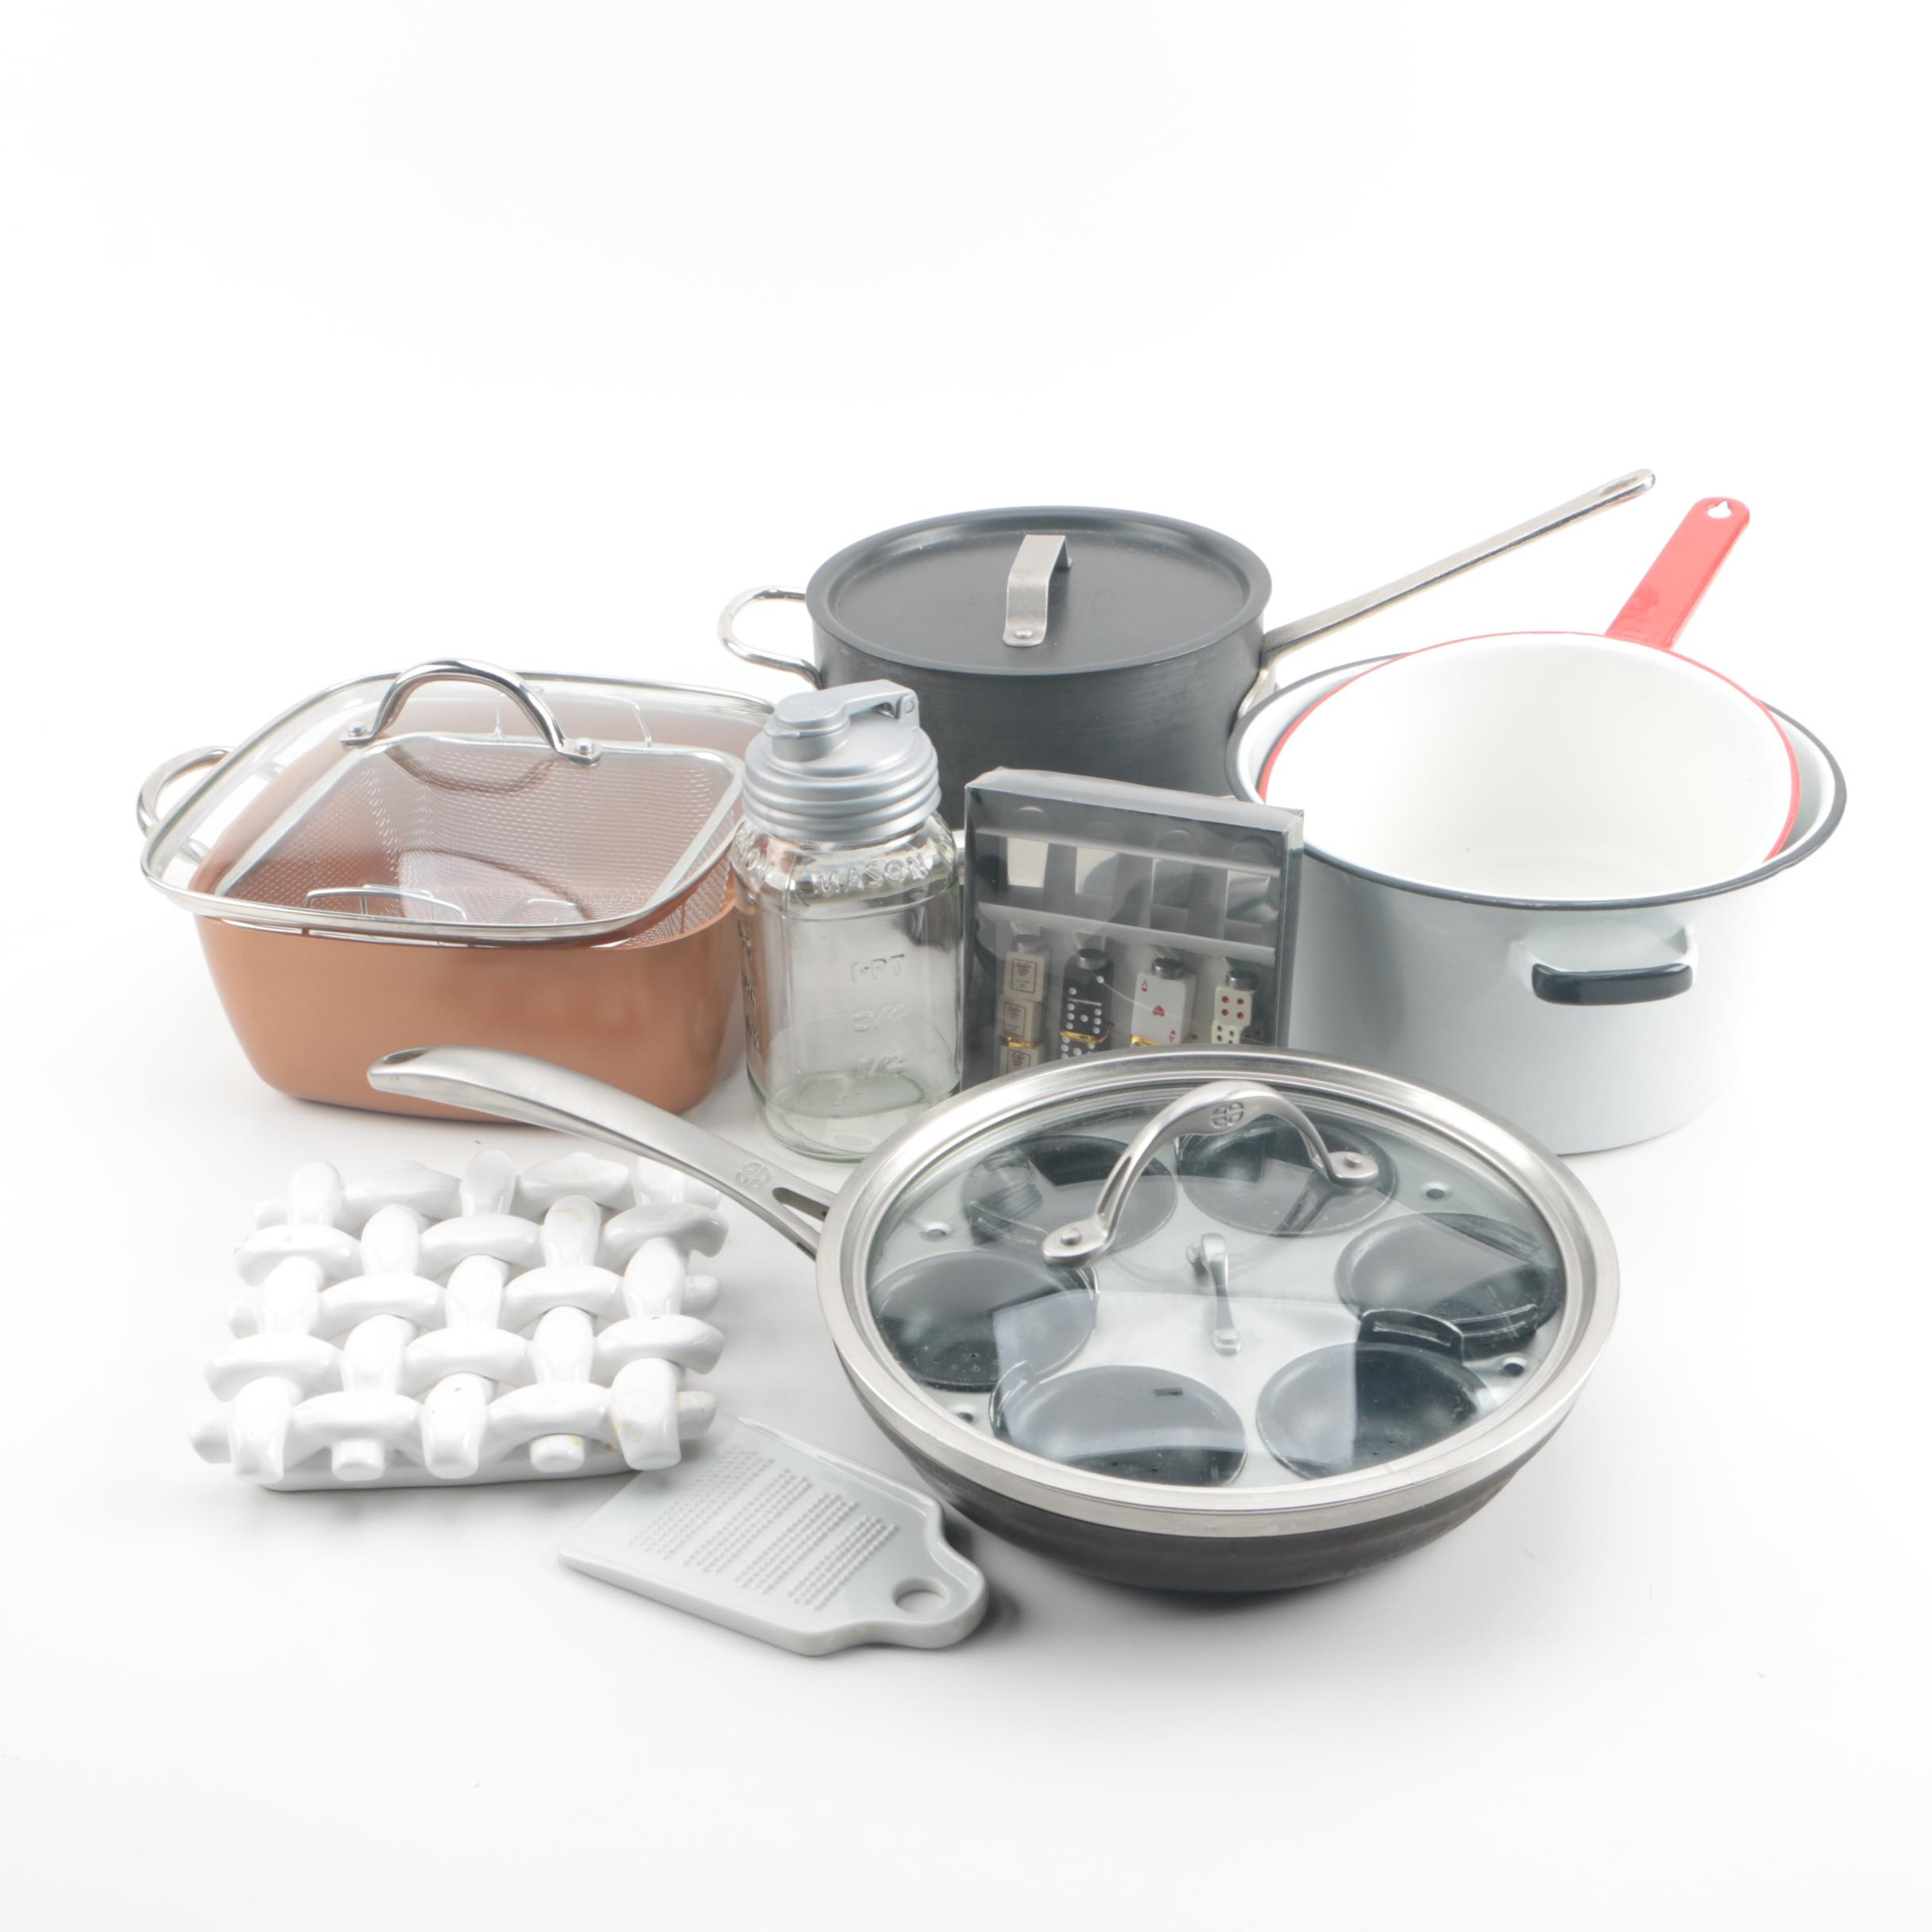 Cookware and Kitchen Utensils featuring Calphalon and NSF